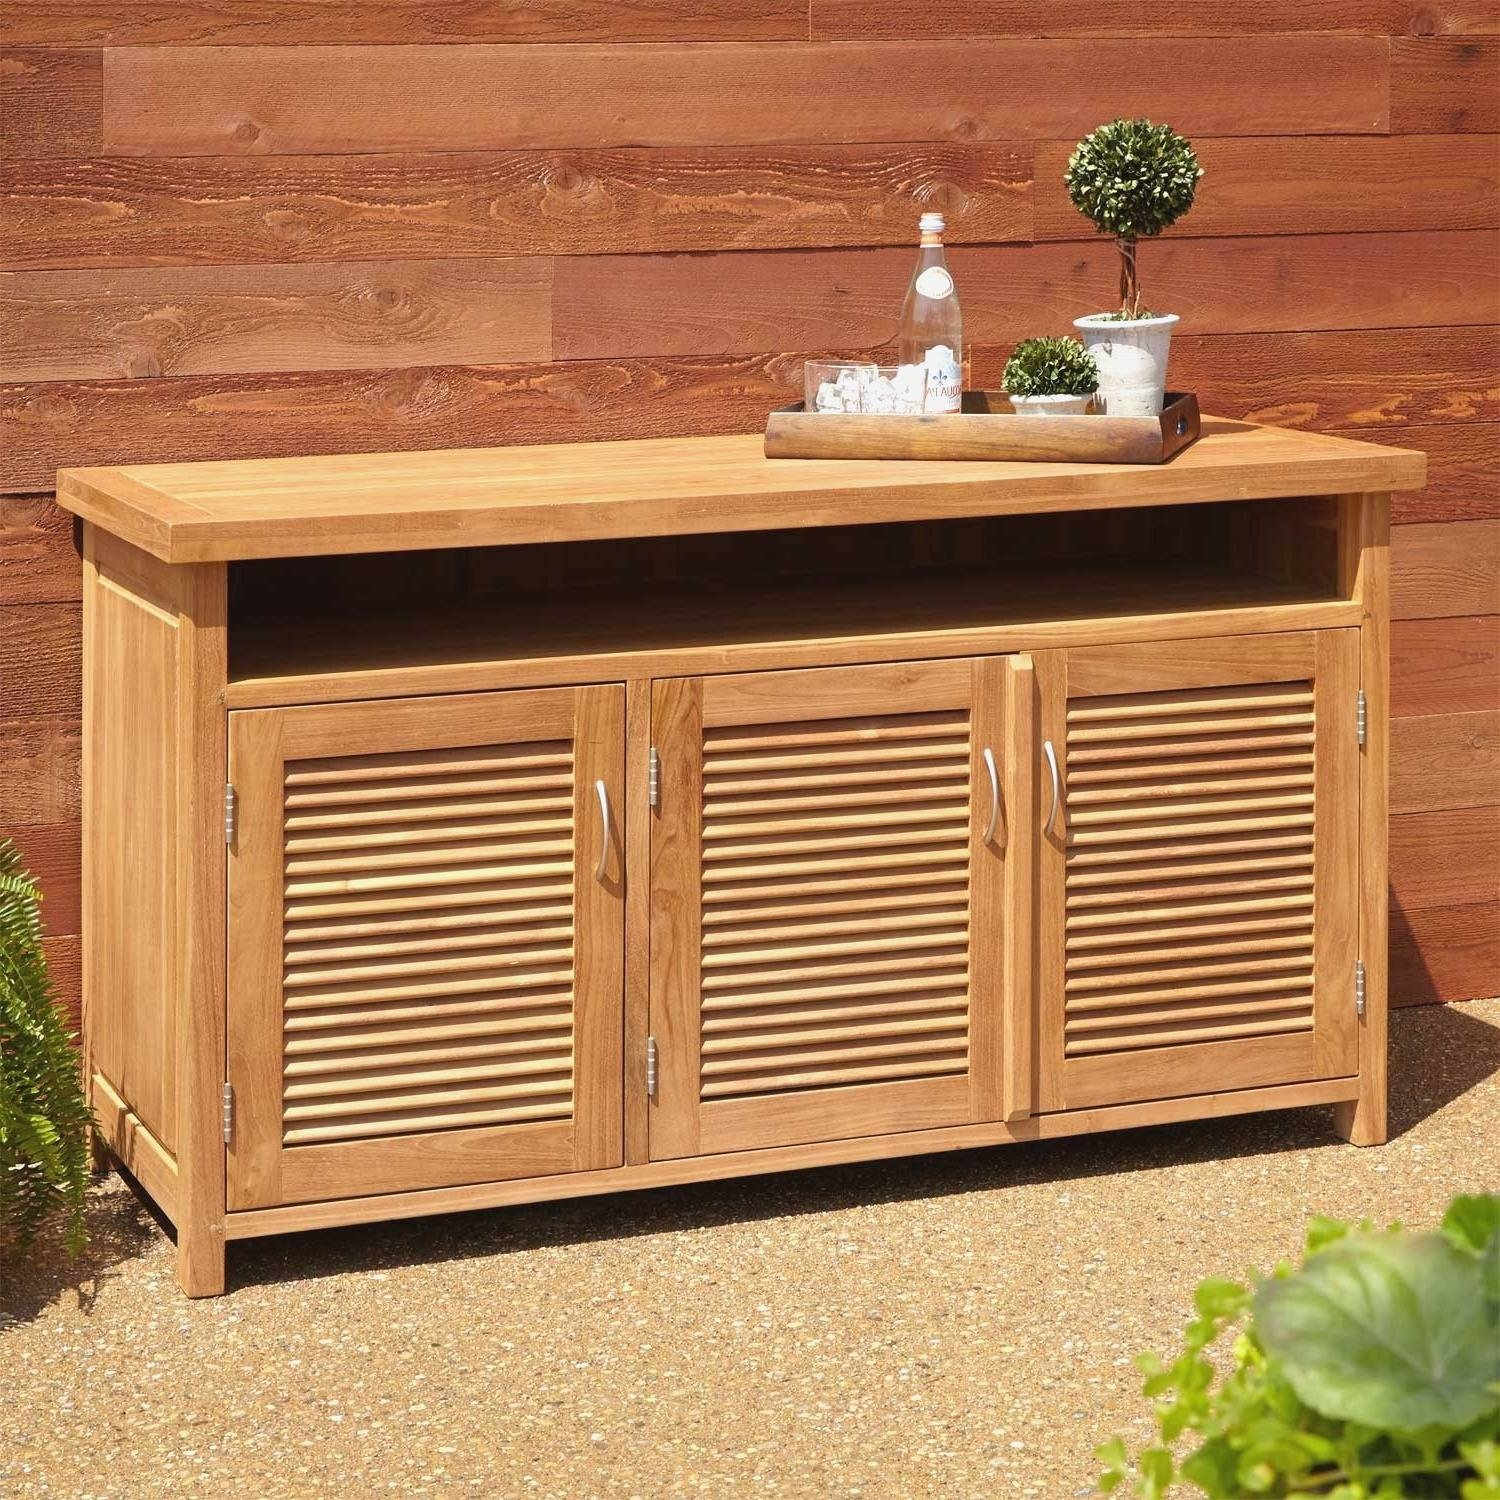 Outdoor Sideboards And Buffets: Outdoor Sideboards And Buffets New Inside Outdoor Sideboards And Buffets (View 11 of 15)